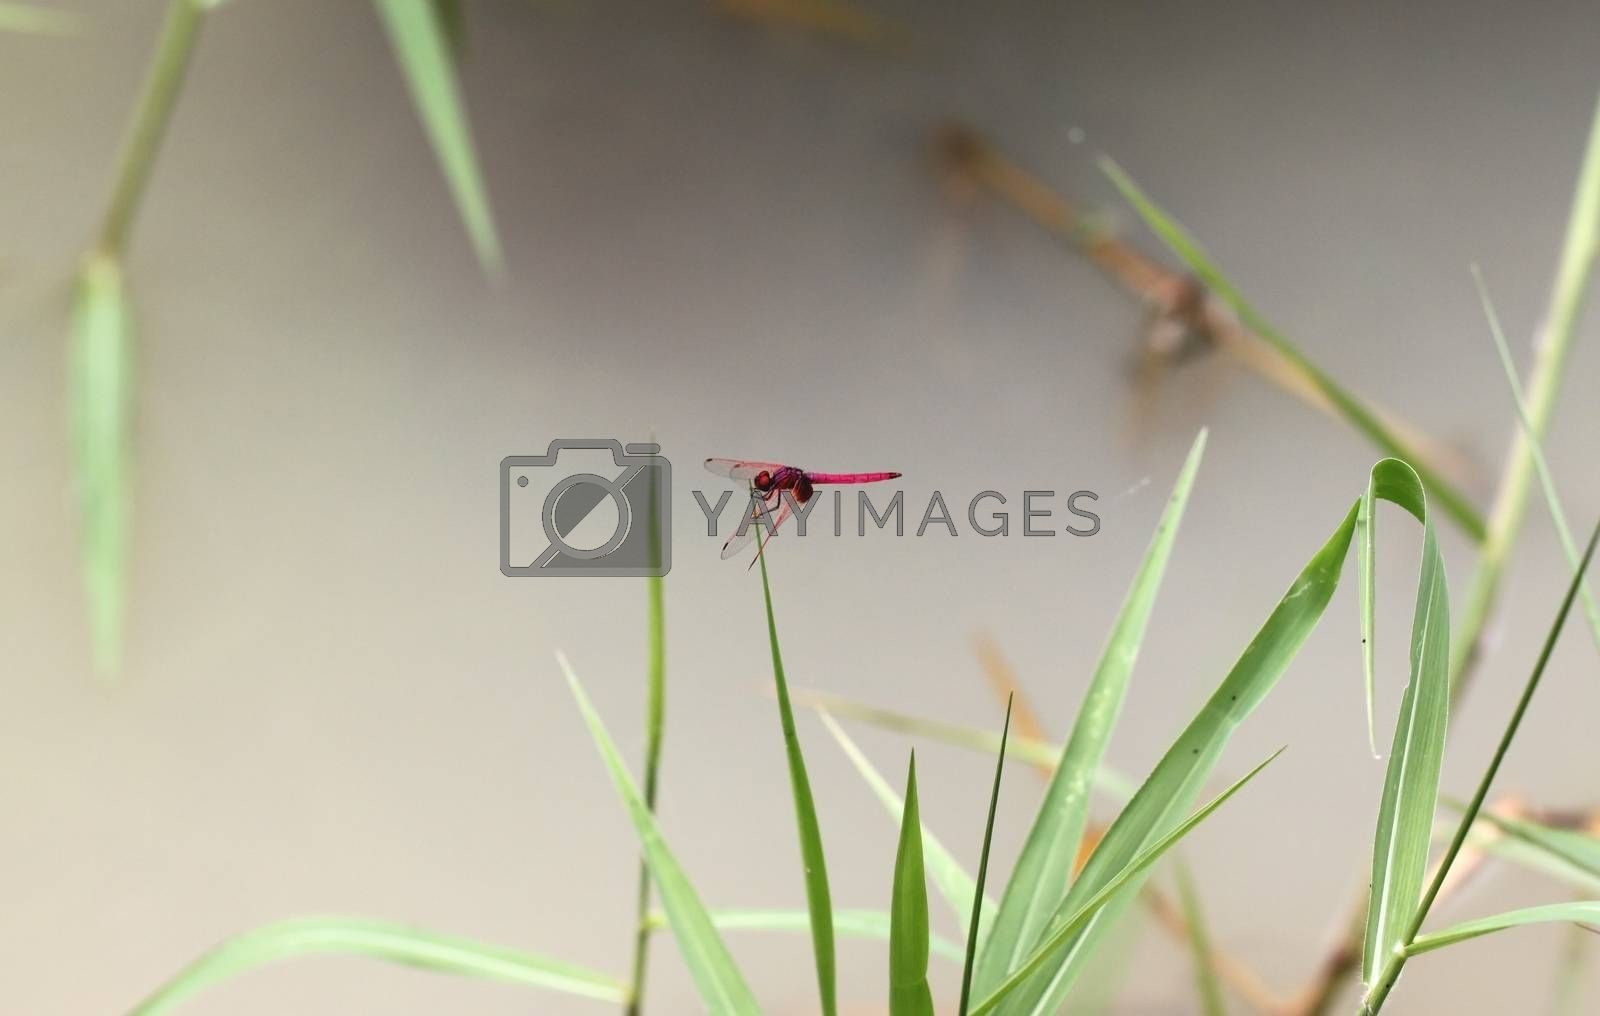 Red dragonfly on green grass. by PiyaPhoto